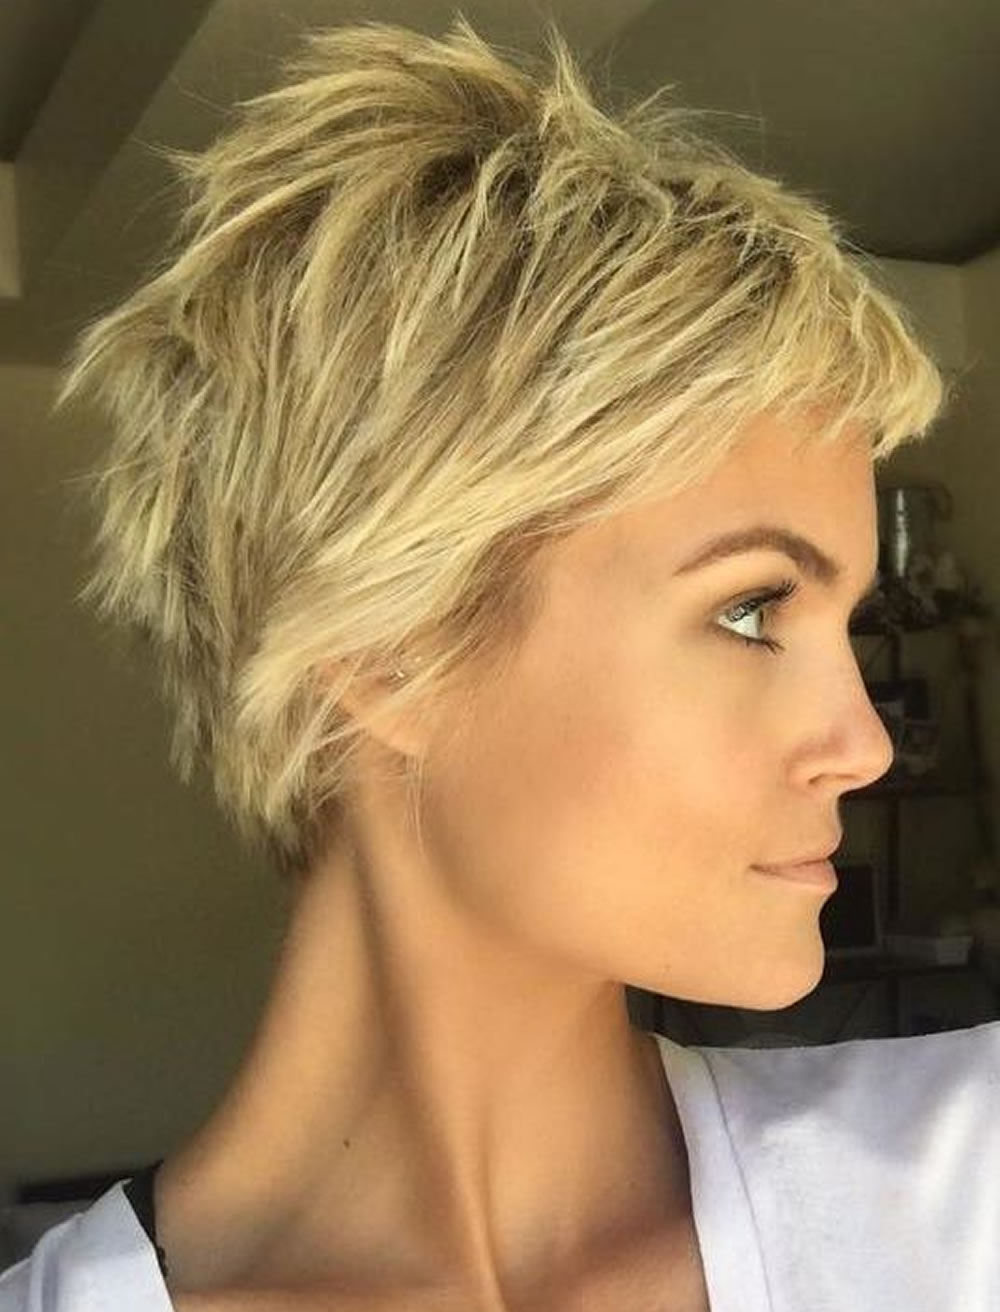 30 Best Asymmetric Short Haircuts For Women Of All Time – Hairstyles With Regard To Asymmetrical Short Hairstyles (View 2 of 25)